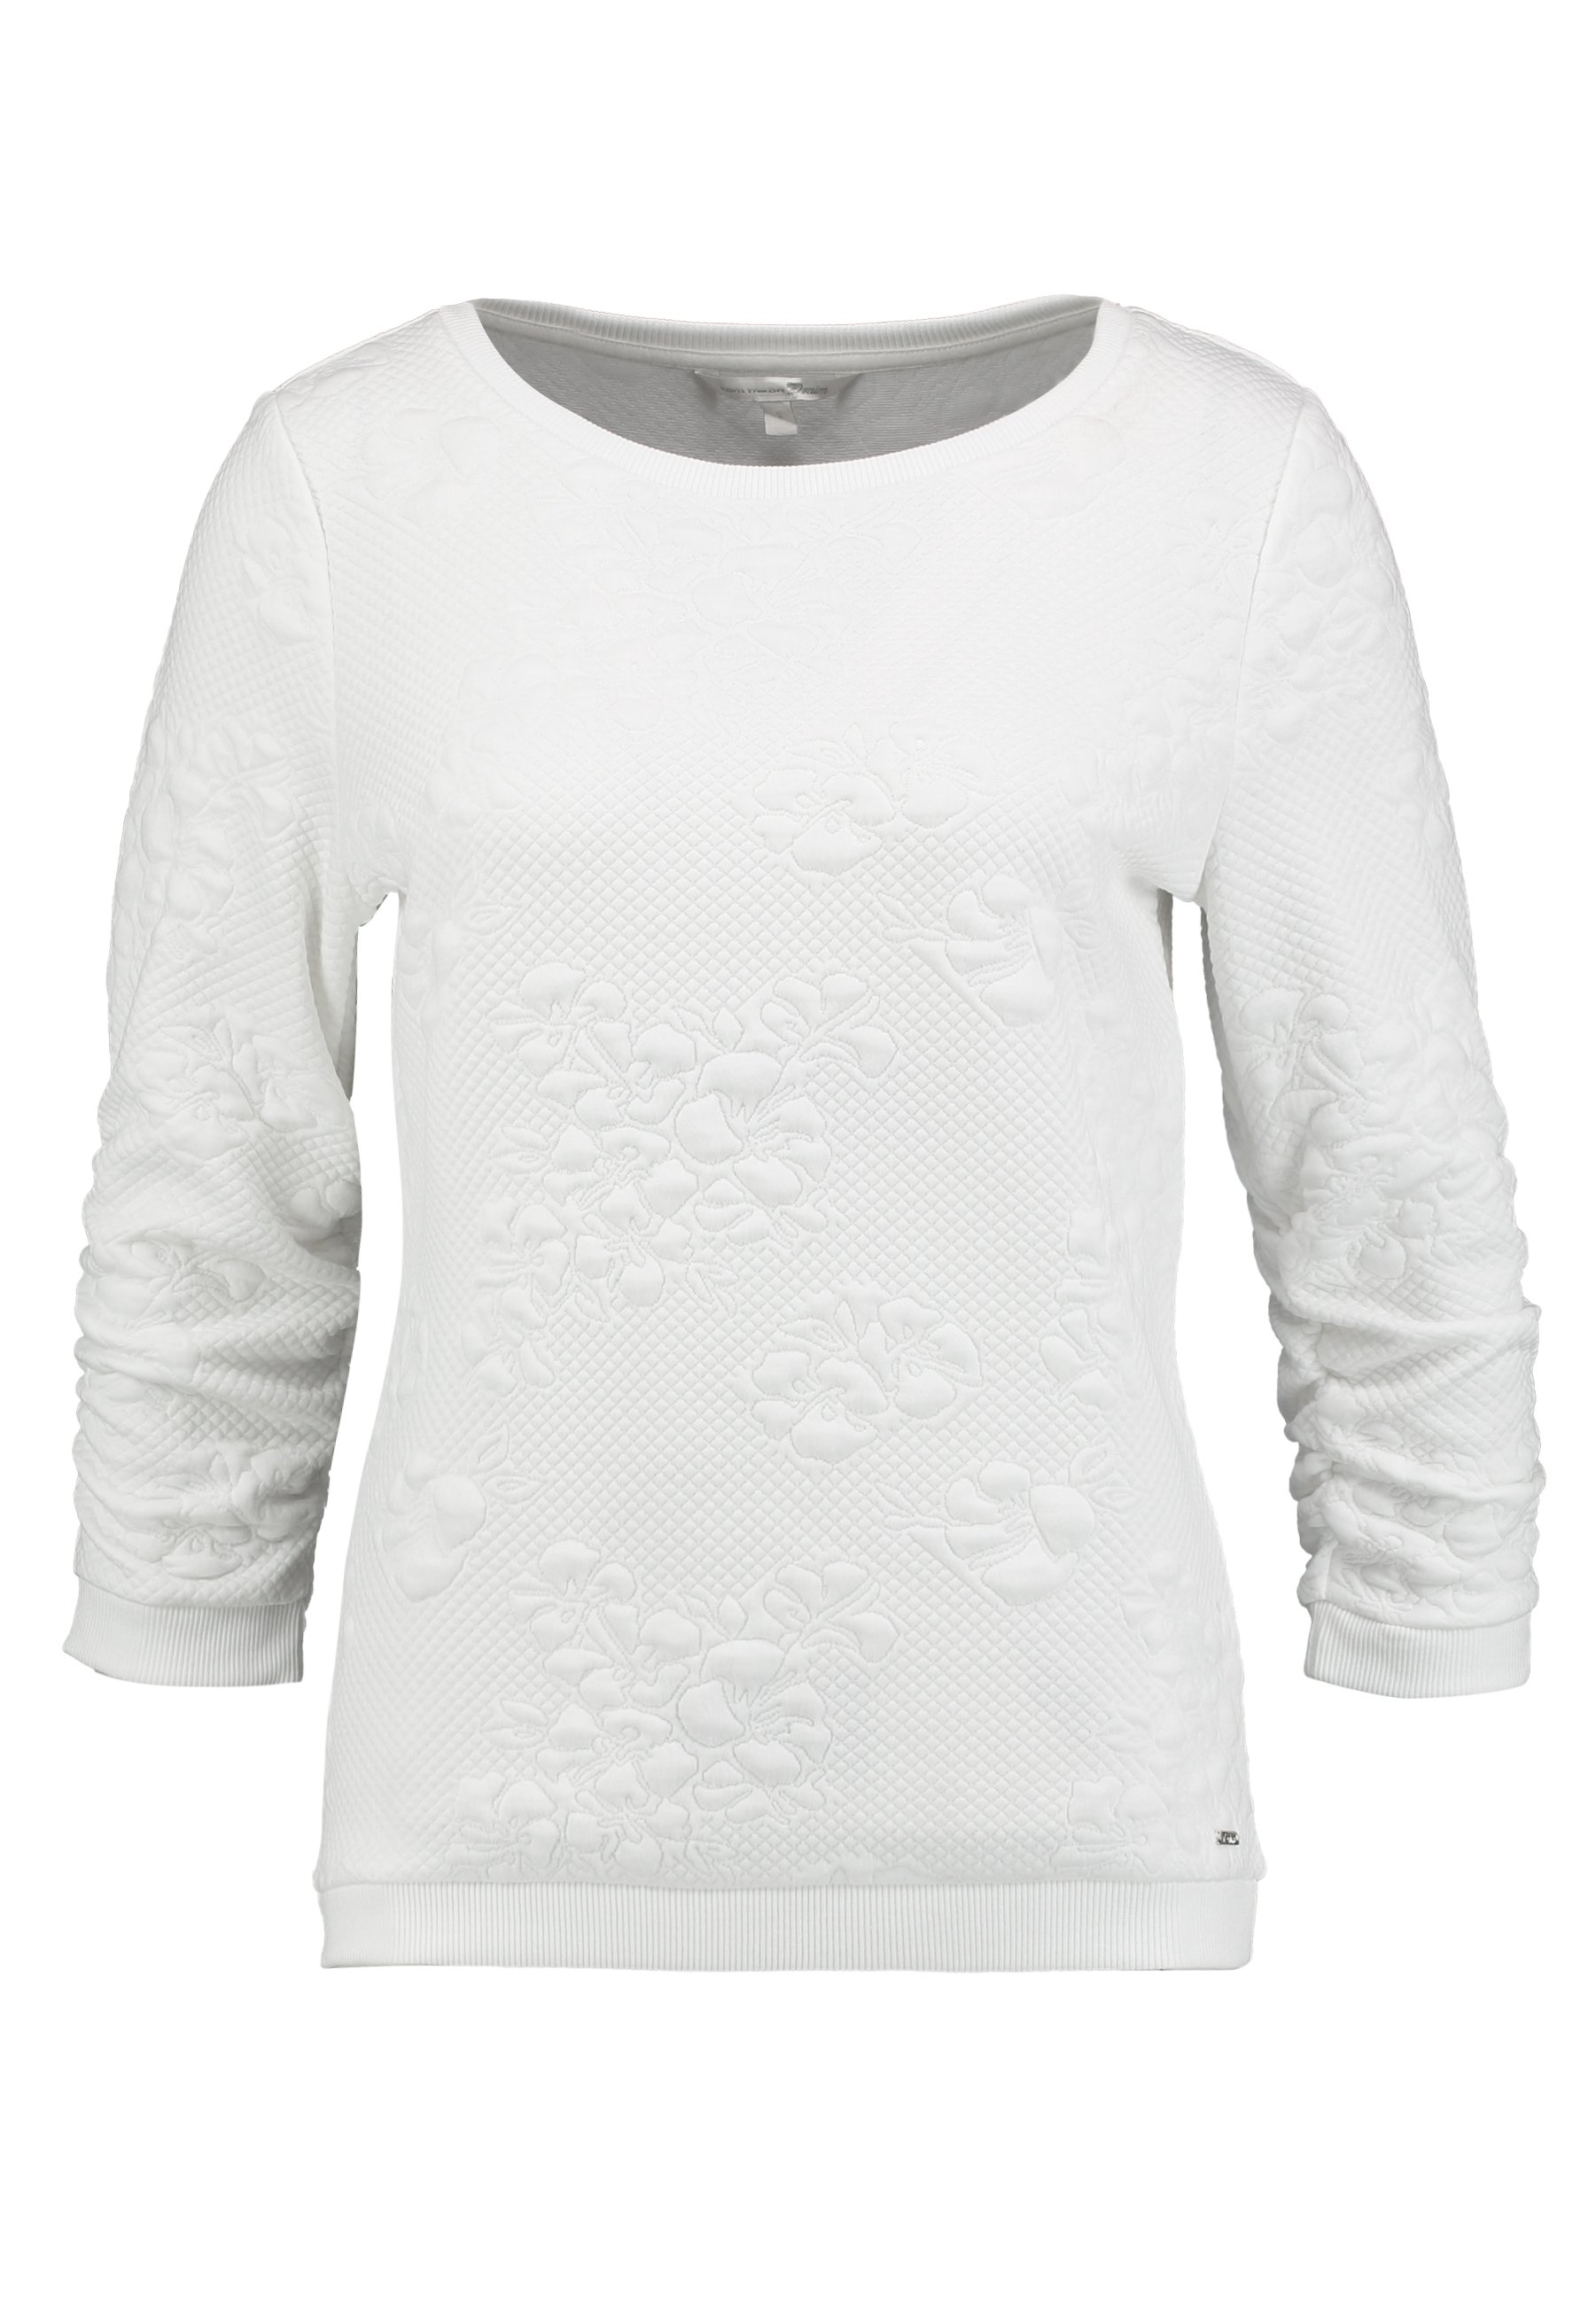 TOM TAILOR DENIM FLOWER Sweater off white Zalando.nl